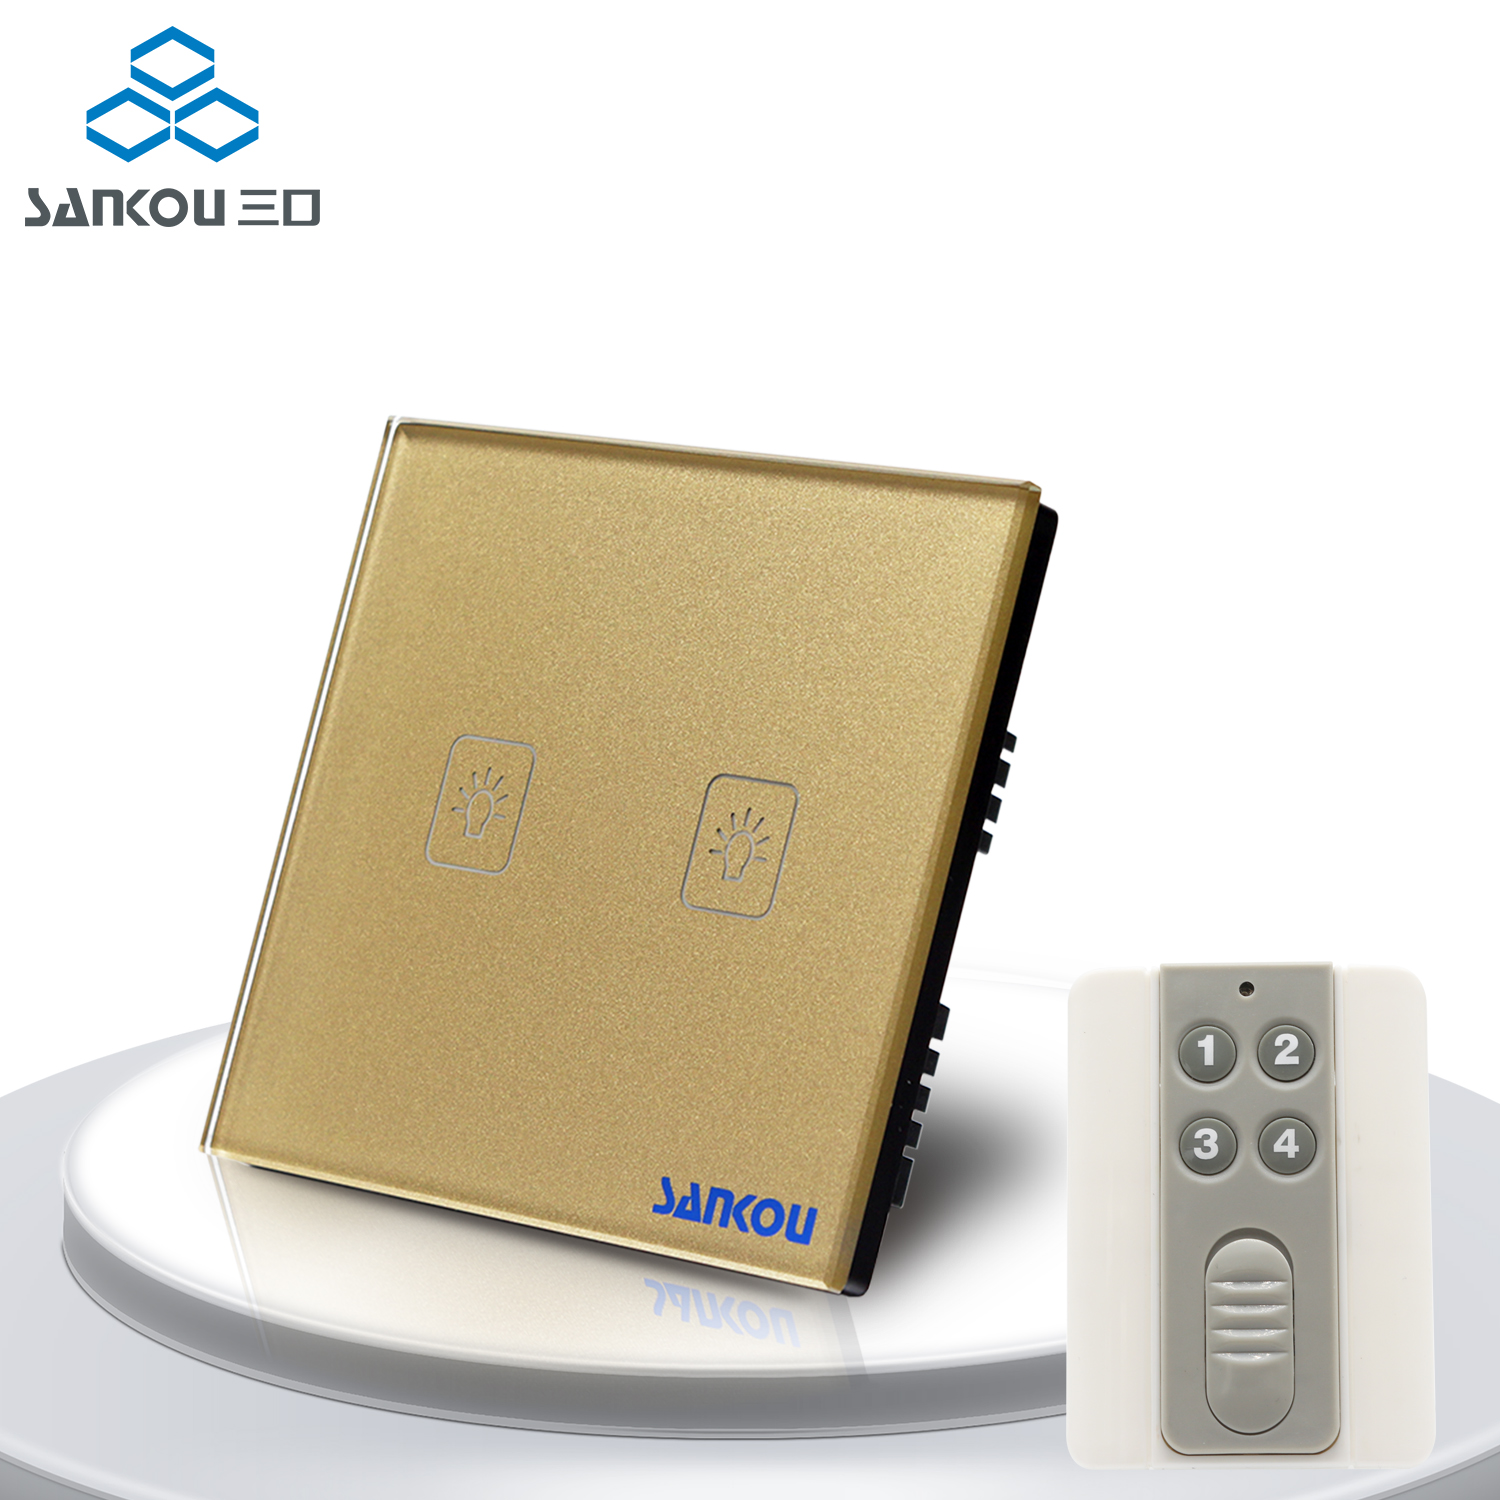 Cnskou  UK Standard 2Gang Remote Touch Switches Golden Crystal Glass+LED Panel Wall Light Switch&Remote Controller 3gang1way uk wall light switches ac110v 250v touch remote switch